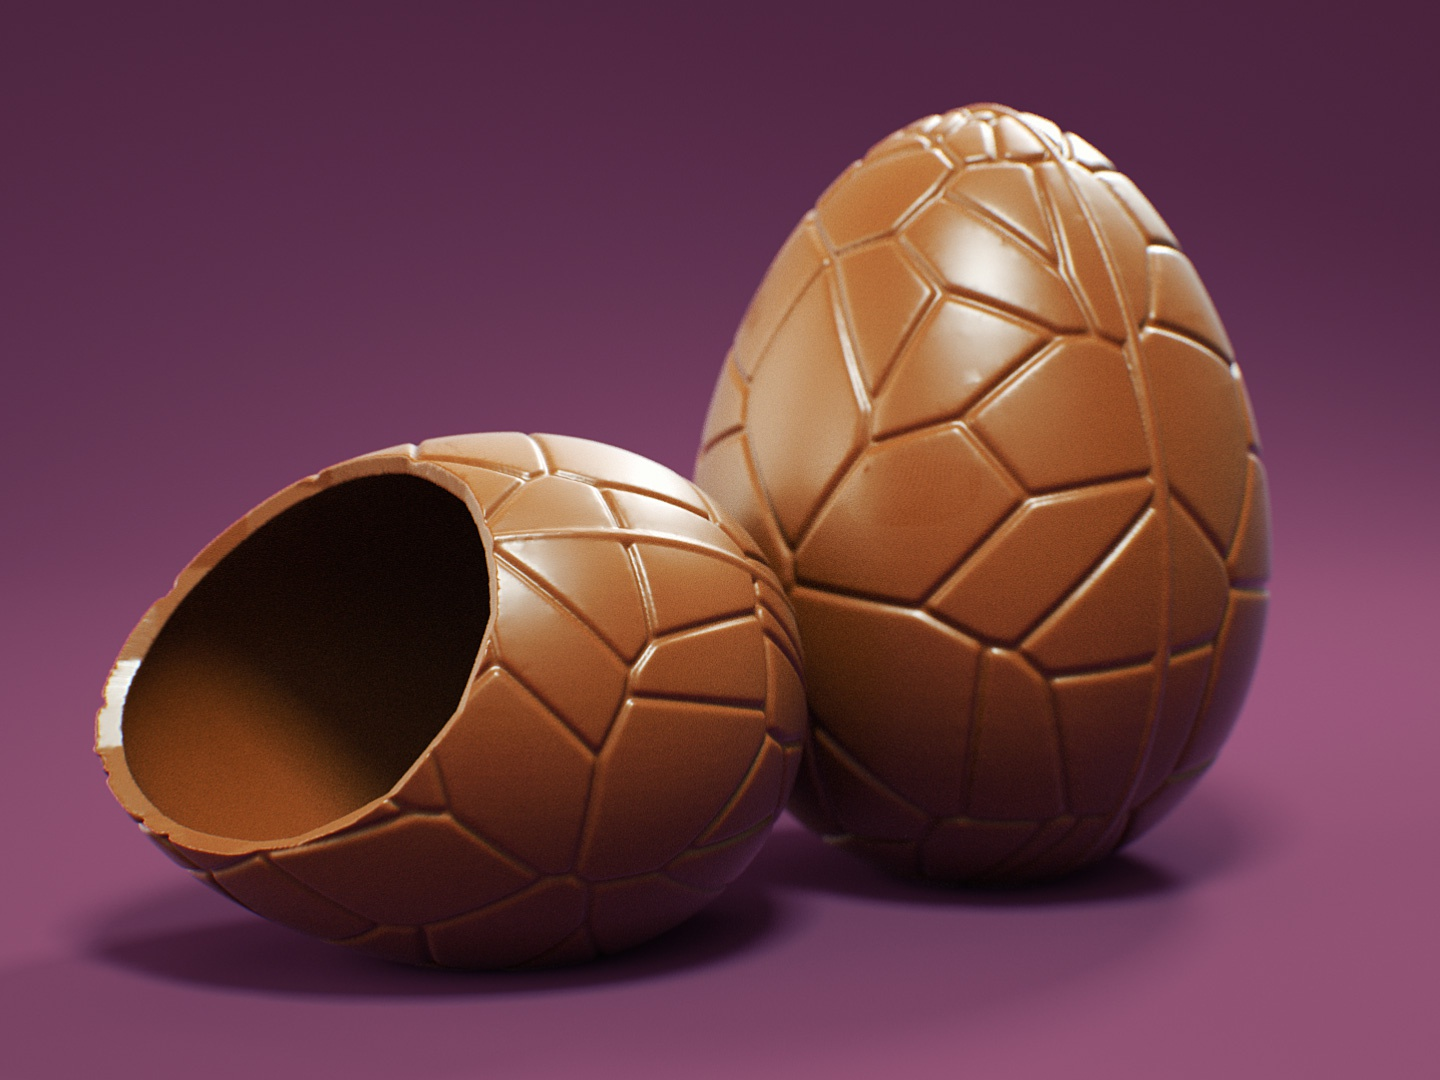 C4D Easter Egg Modeling - Cinema 4D Tutorial (Free Project) by CG